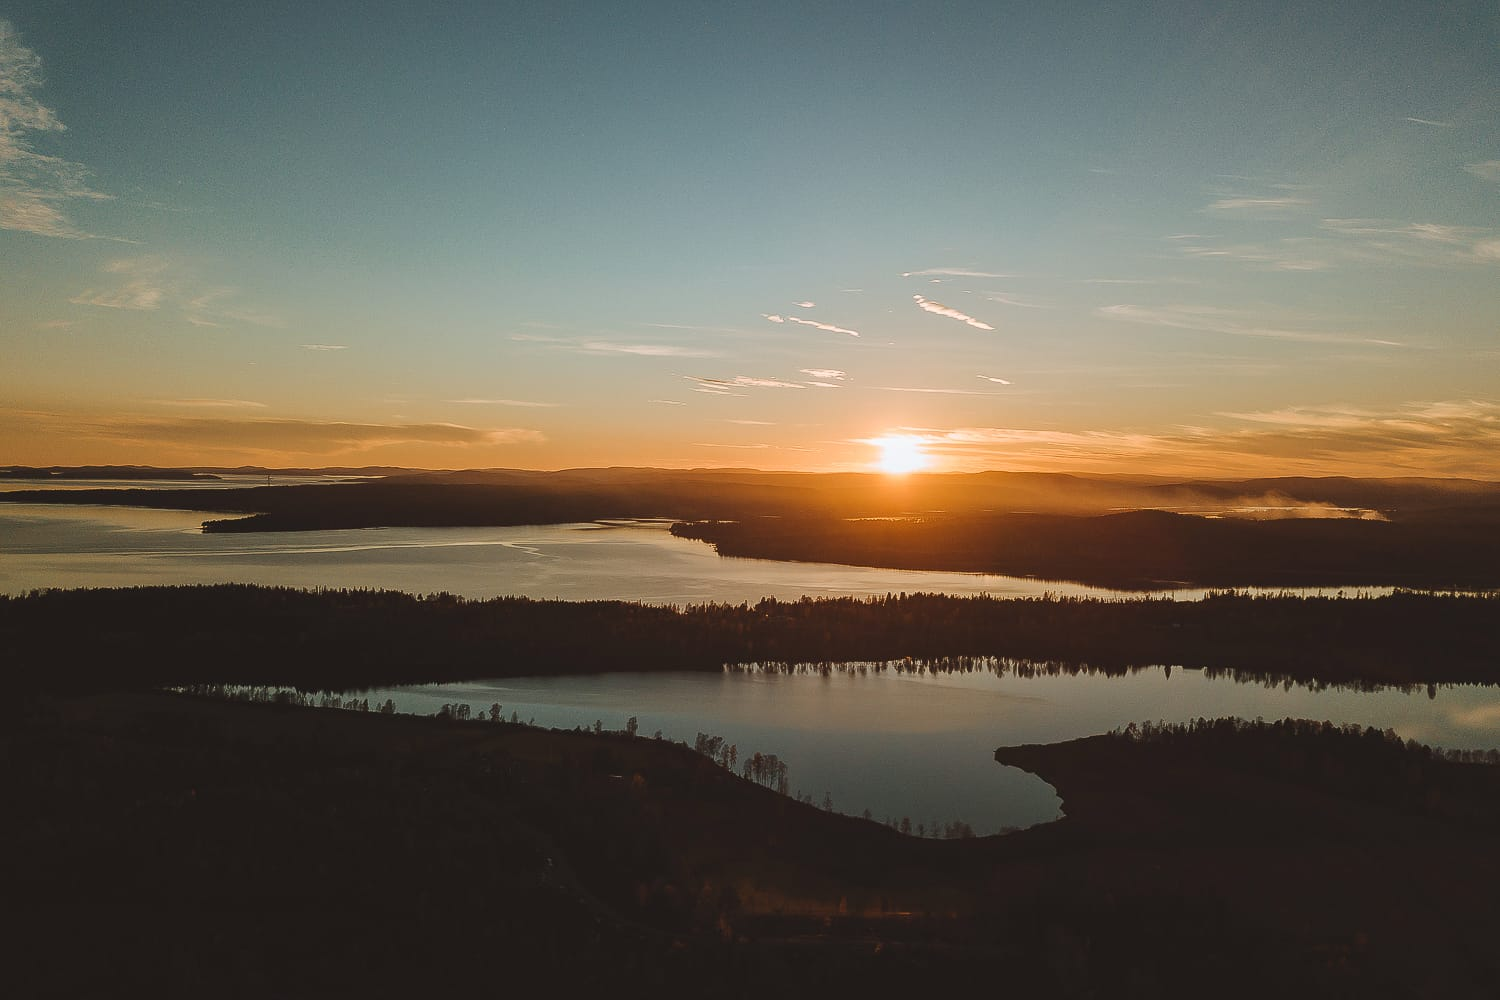 Drone shot over a sunset